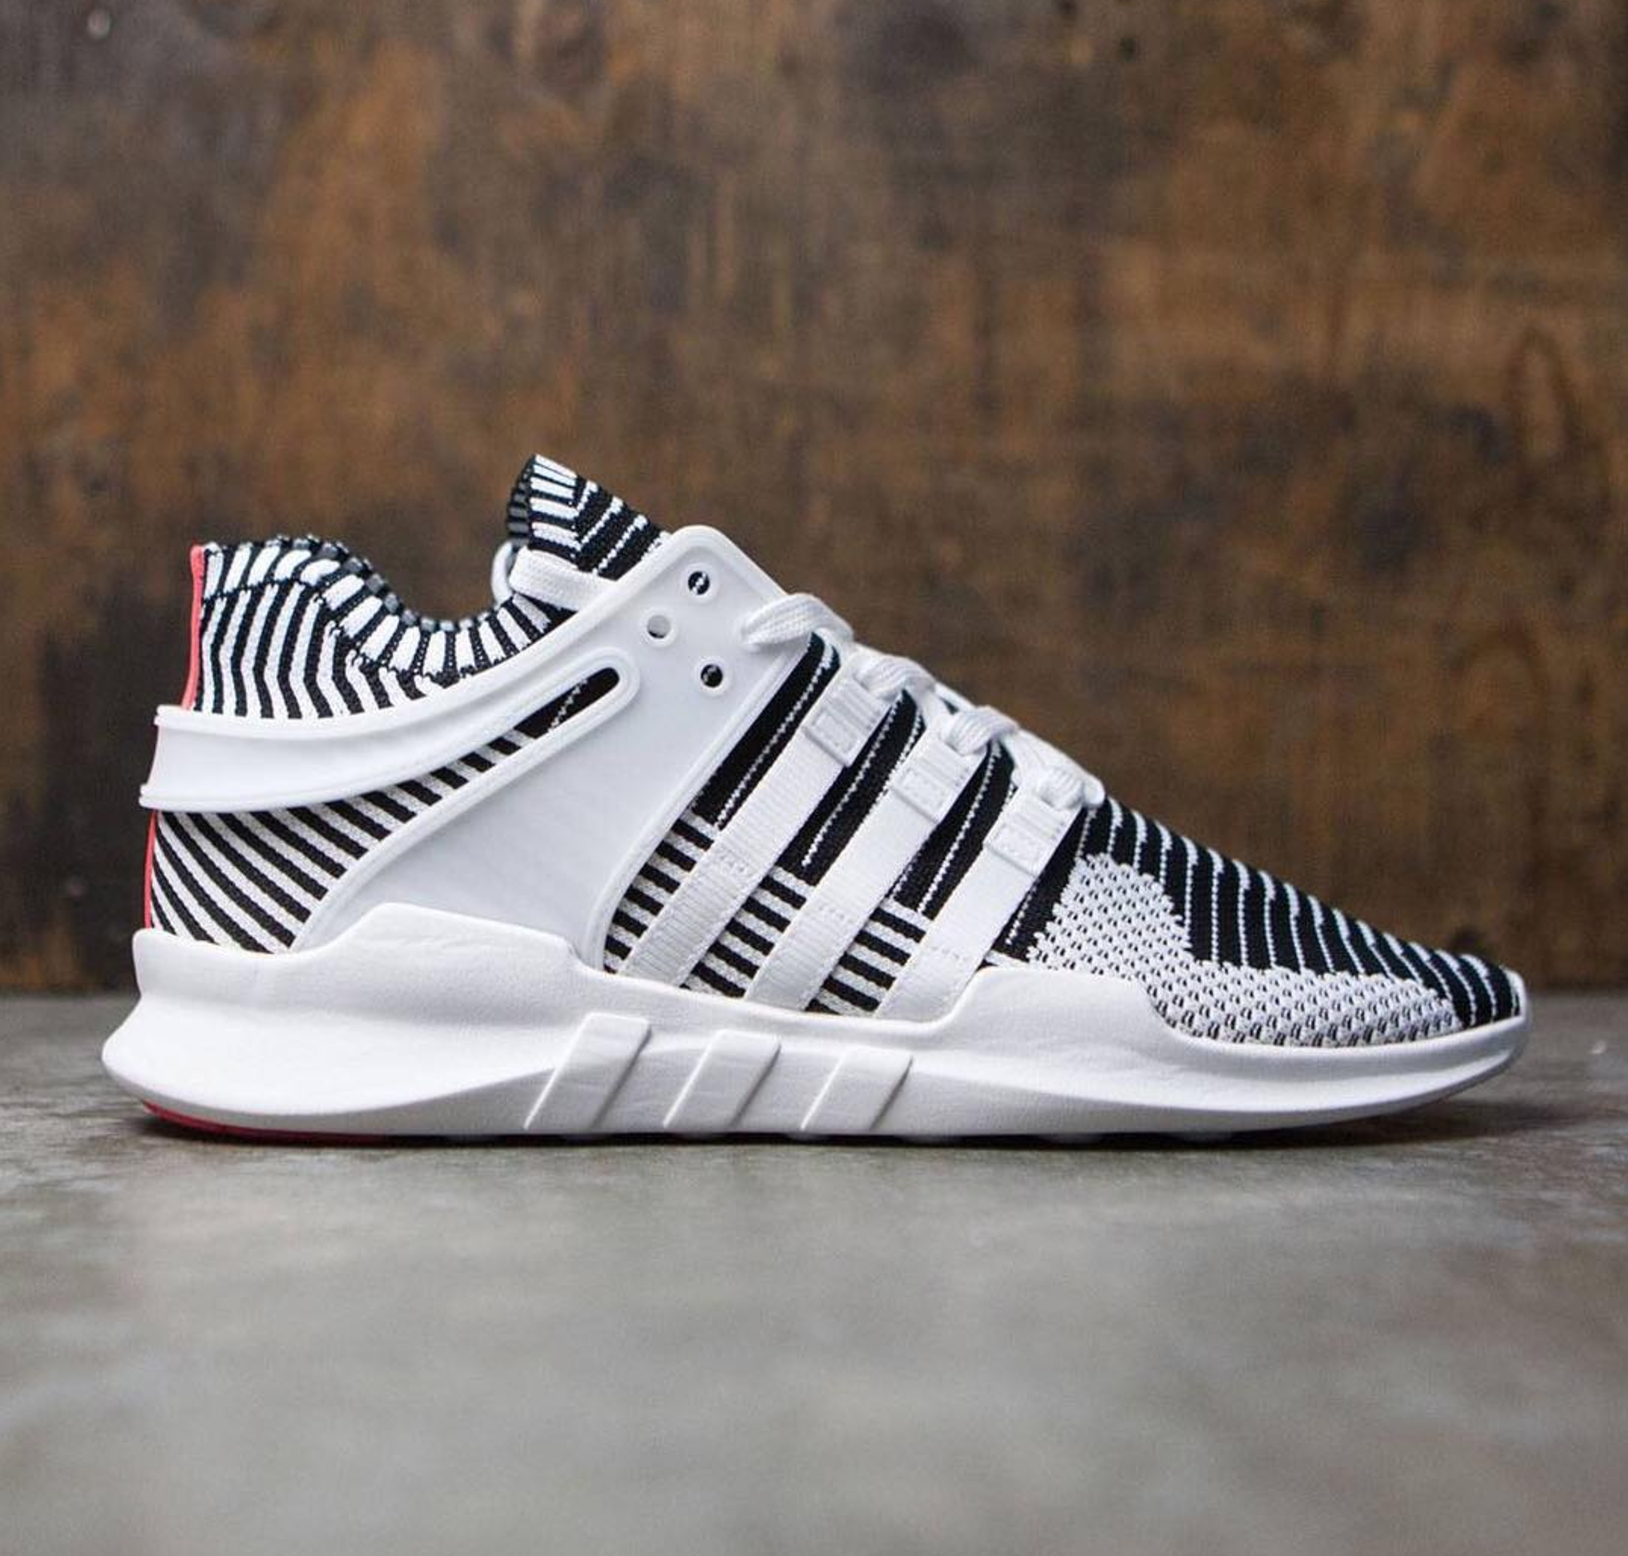 quality design a4e0f 68cdd adidas Introduces a New EQT Support ADV Primeknit - WearTesters